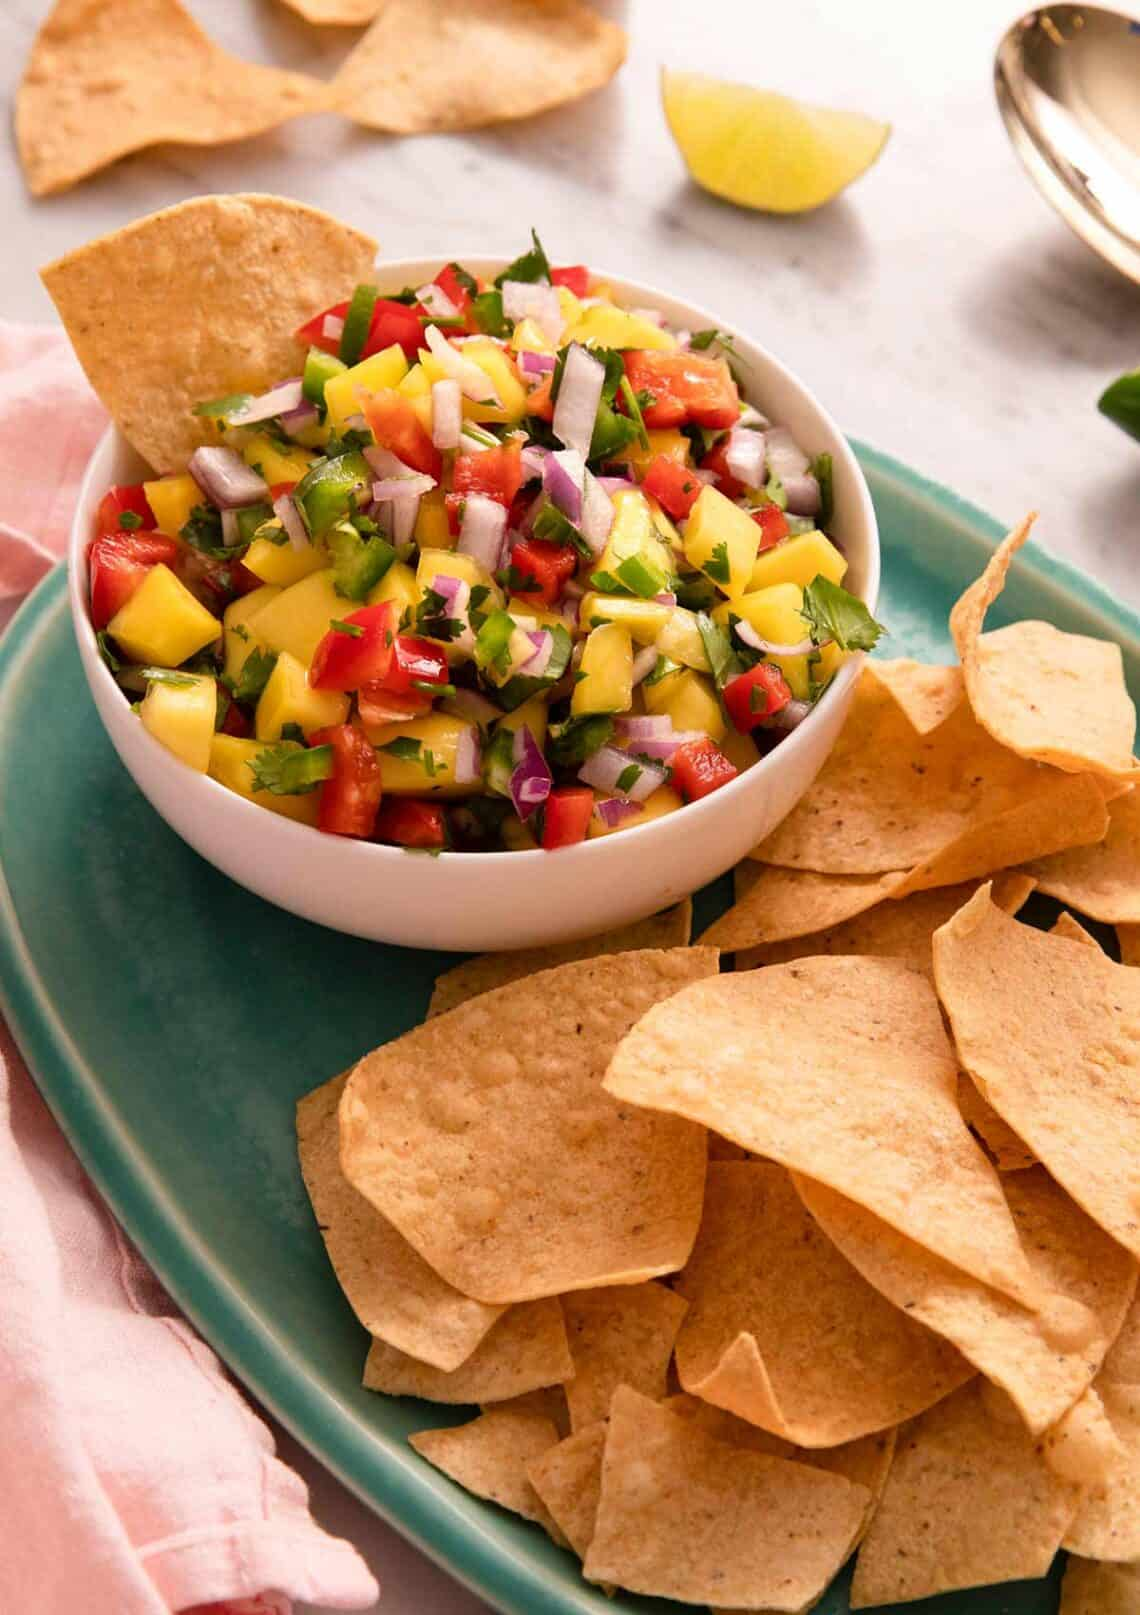 Mango salsa in a bowl with chips beside it